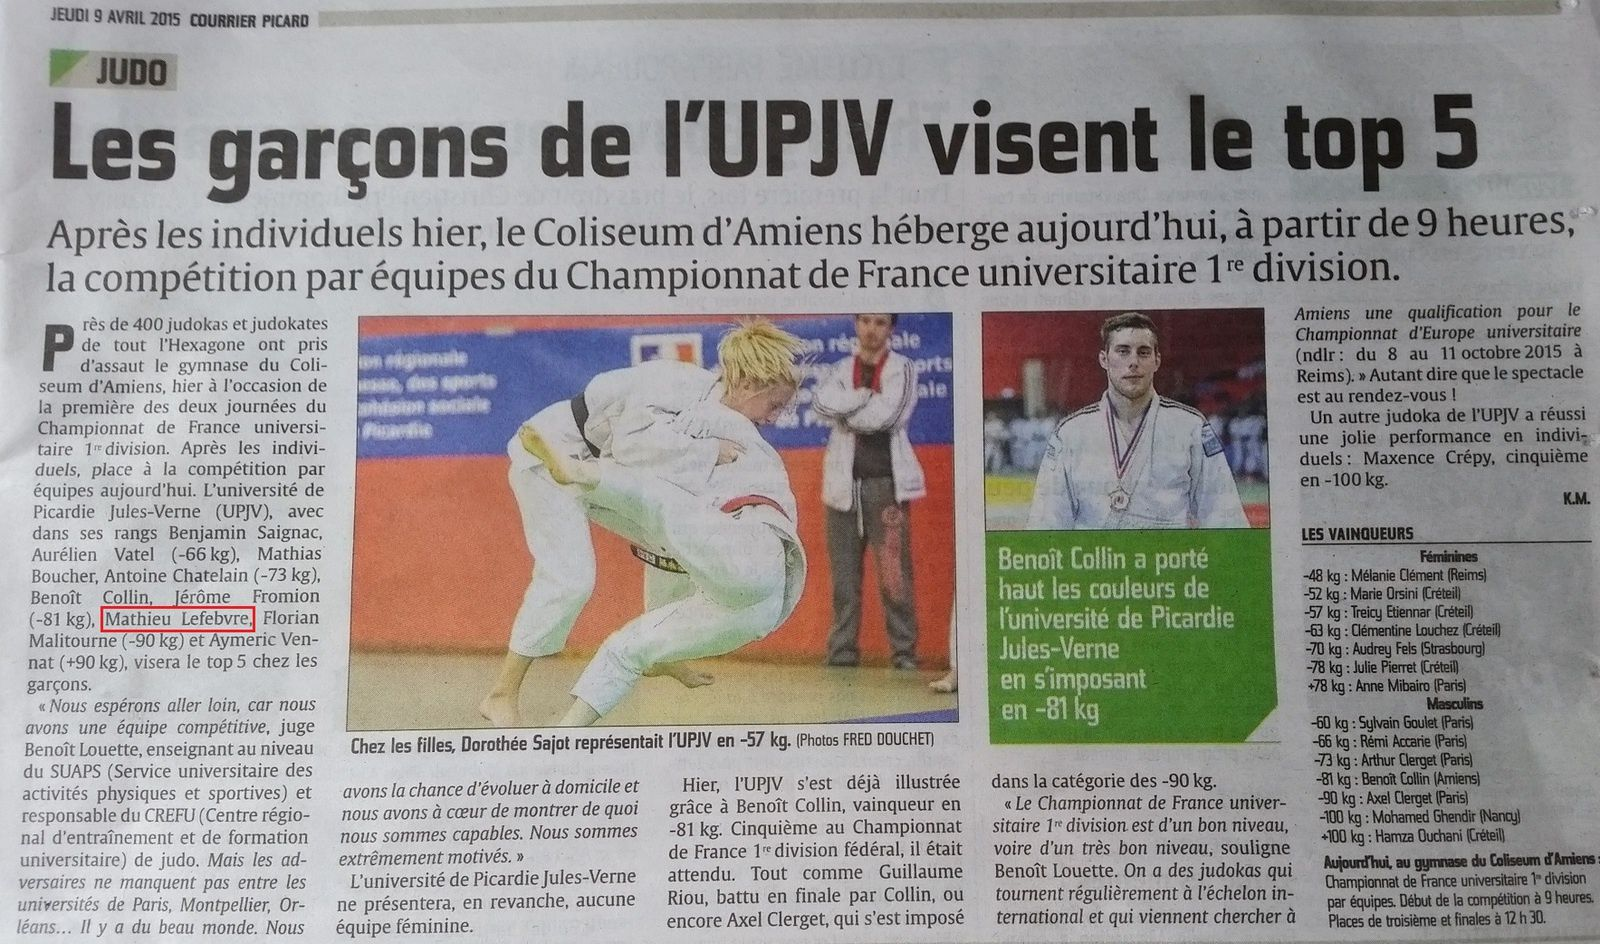 Courrier Picard 09/04/2015